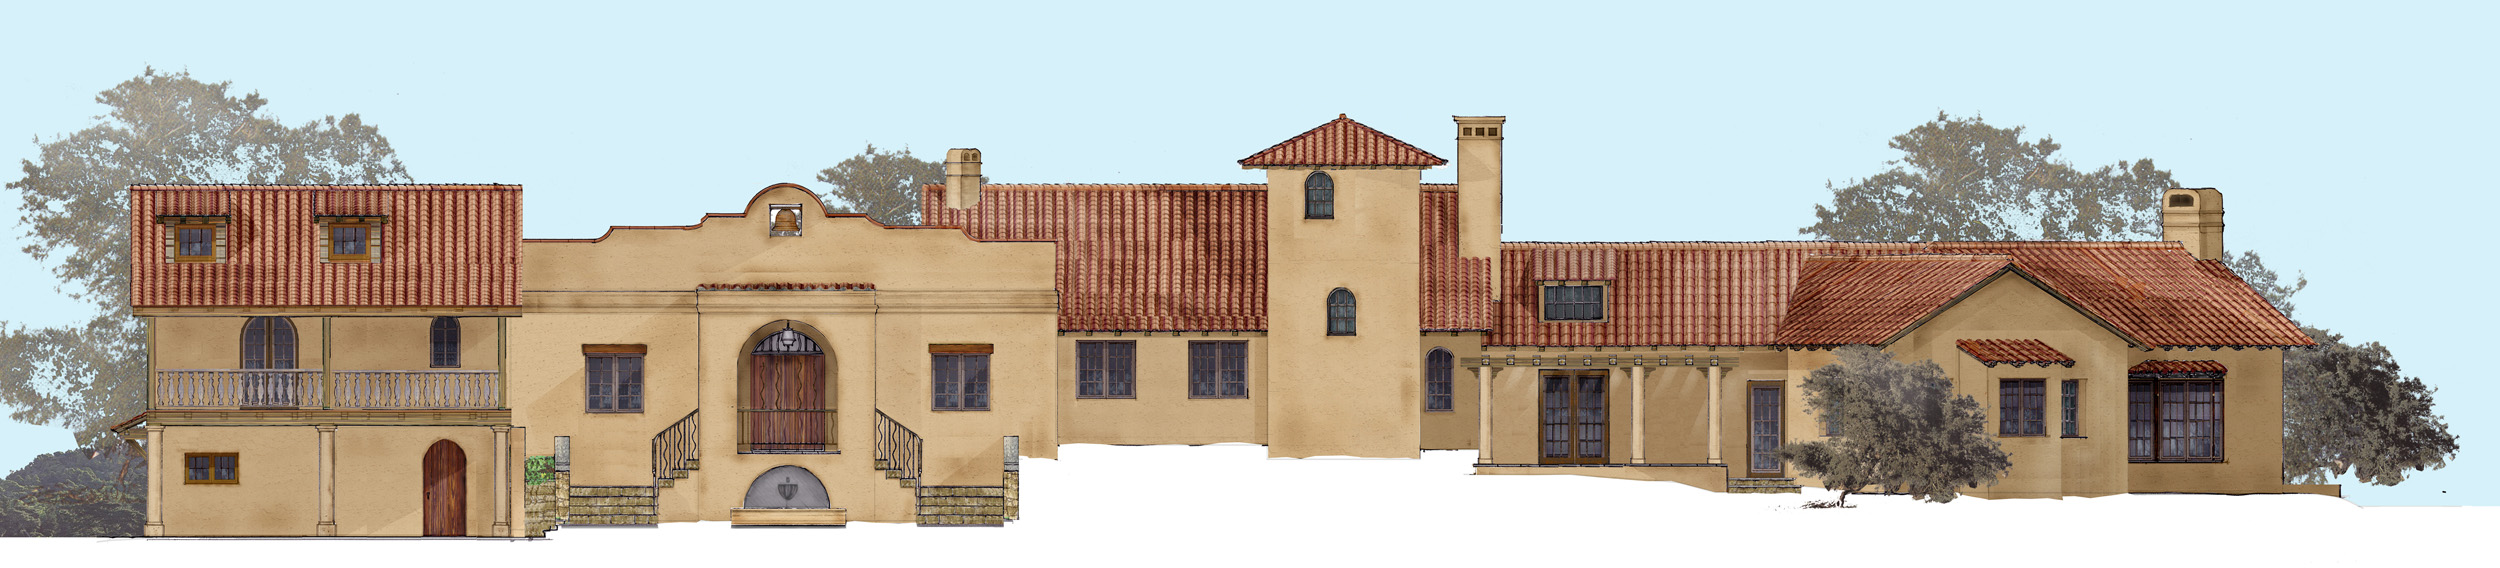 Portfolio - Briggs North Elevation.jpg